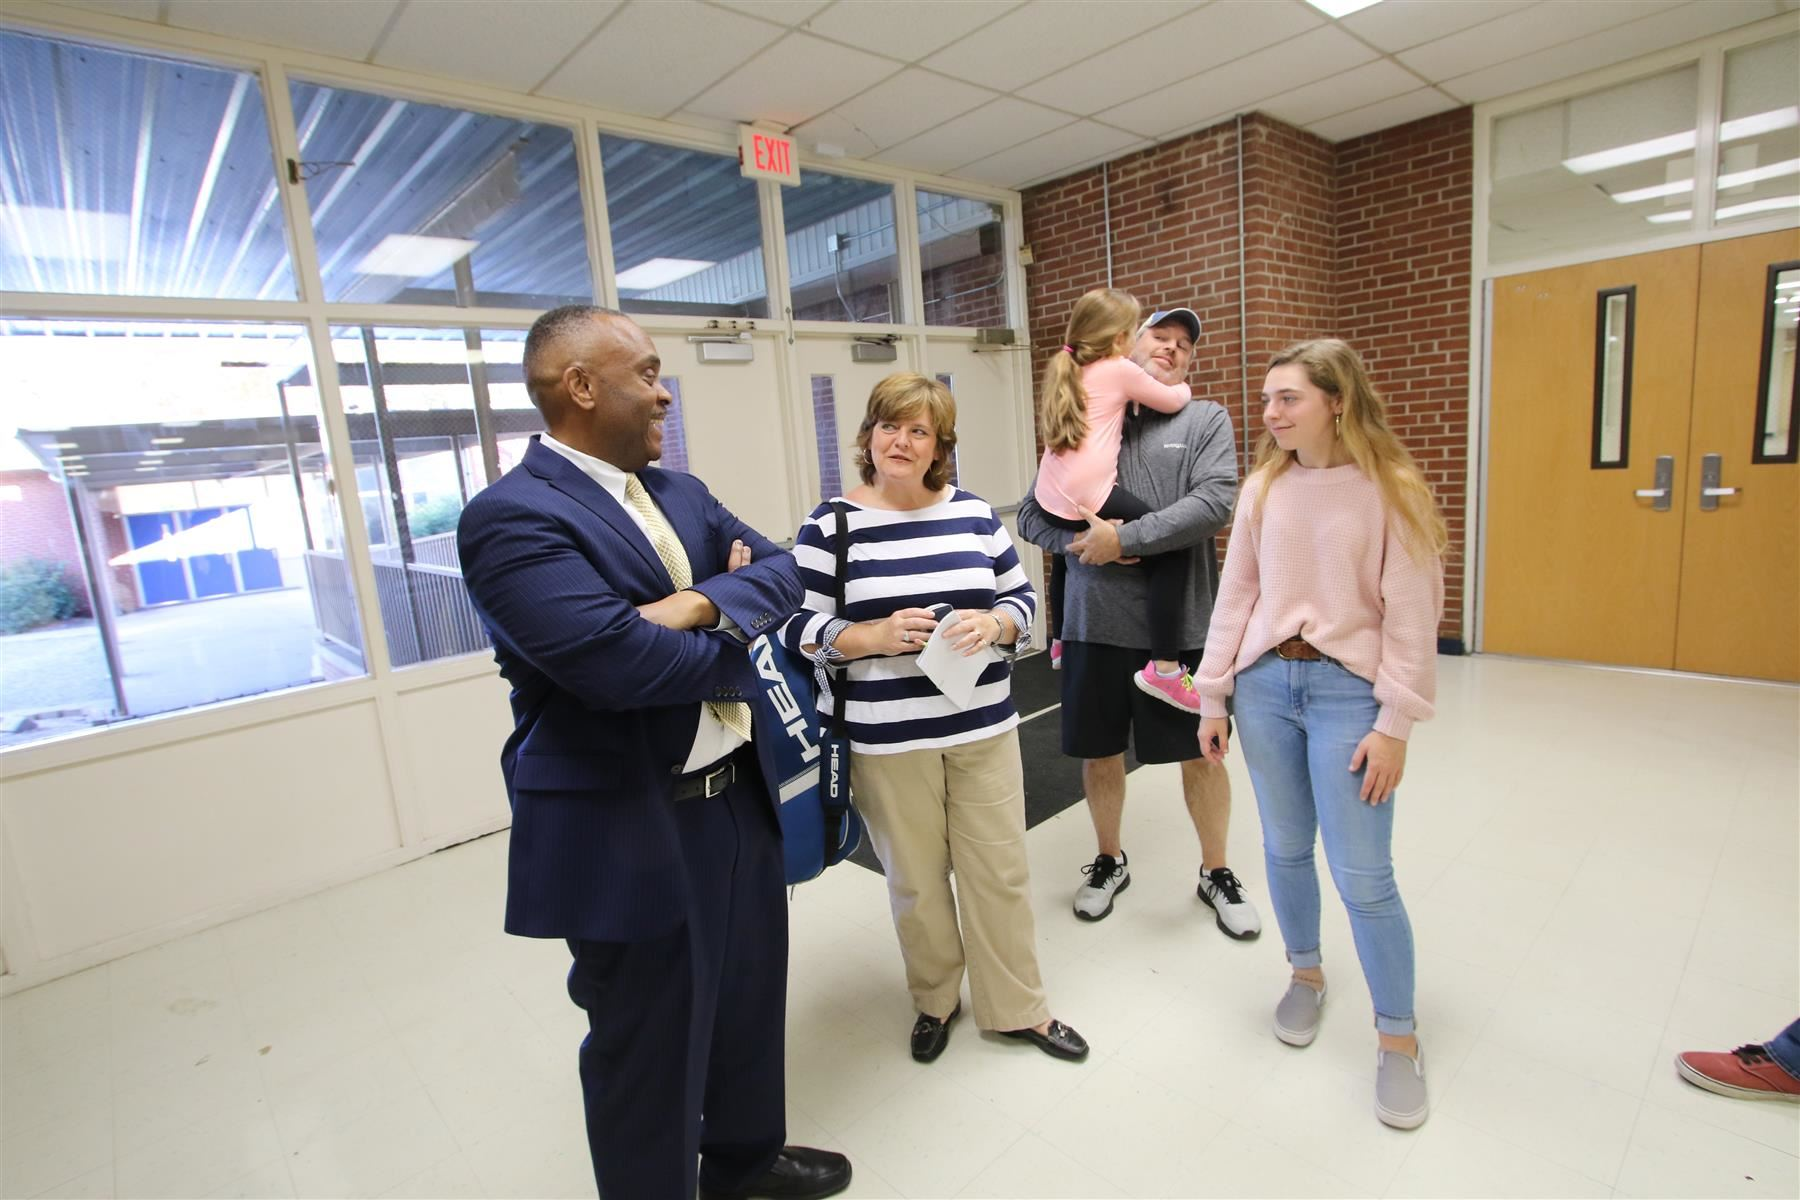 Rep. Robert Reives gathers with Lindley Andrew and her family at Jordan-Matthews High School Nov. 25, 2019.